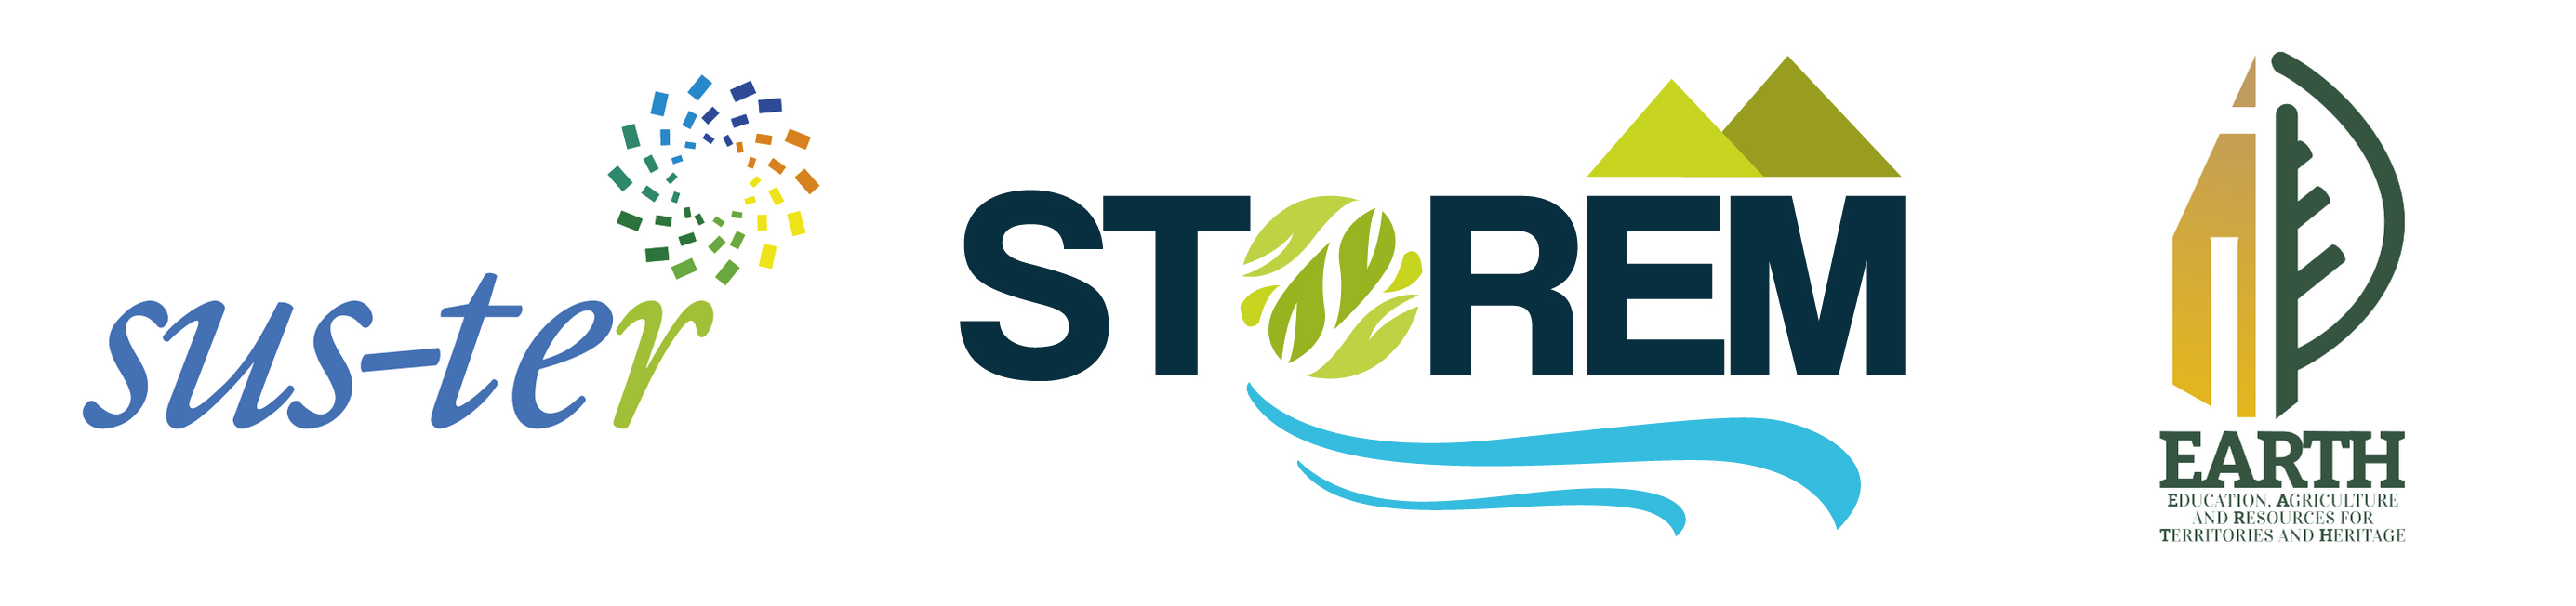 Suster store hearth Collaboration to establish synergies with the SUS-TER and HEARTH projects (E+CBHE)